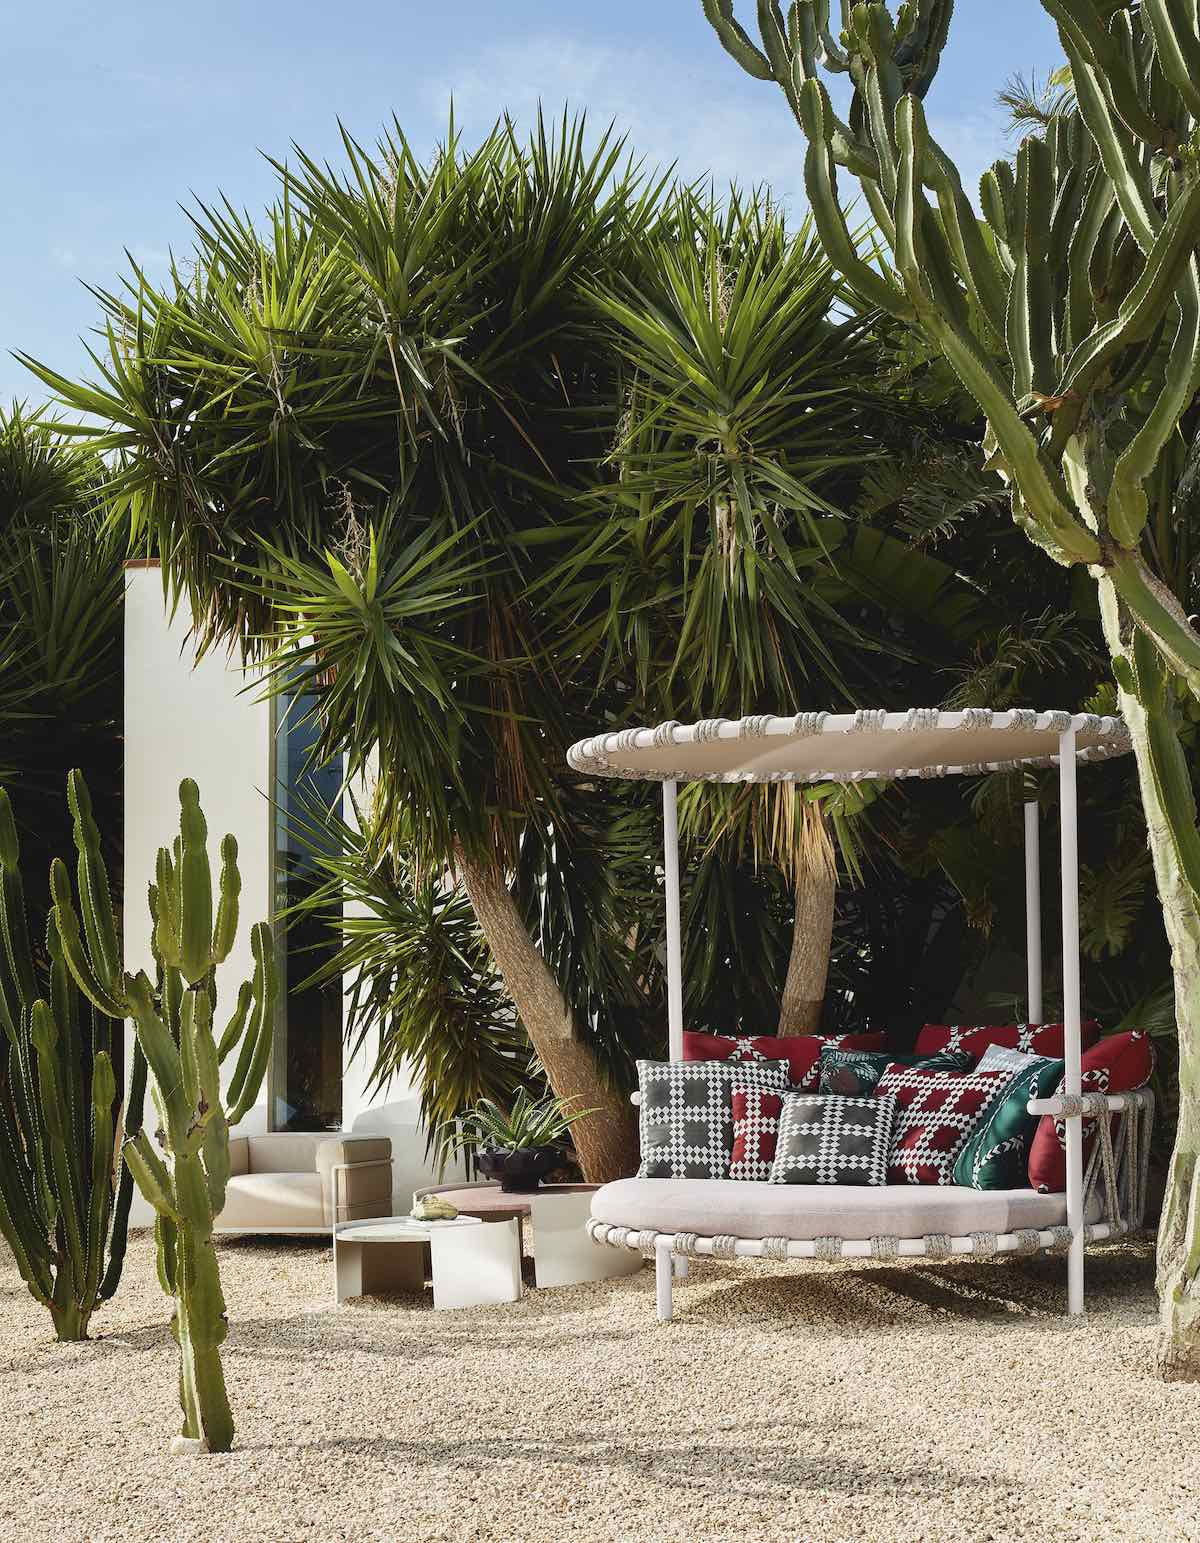 Cassina Perspective Goes Outdoor - TRAMPOLINE lovebed by Patricia Urquiola - Photo by De Pasquale+Maffini.